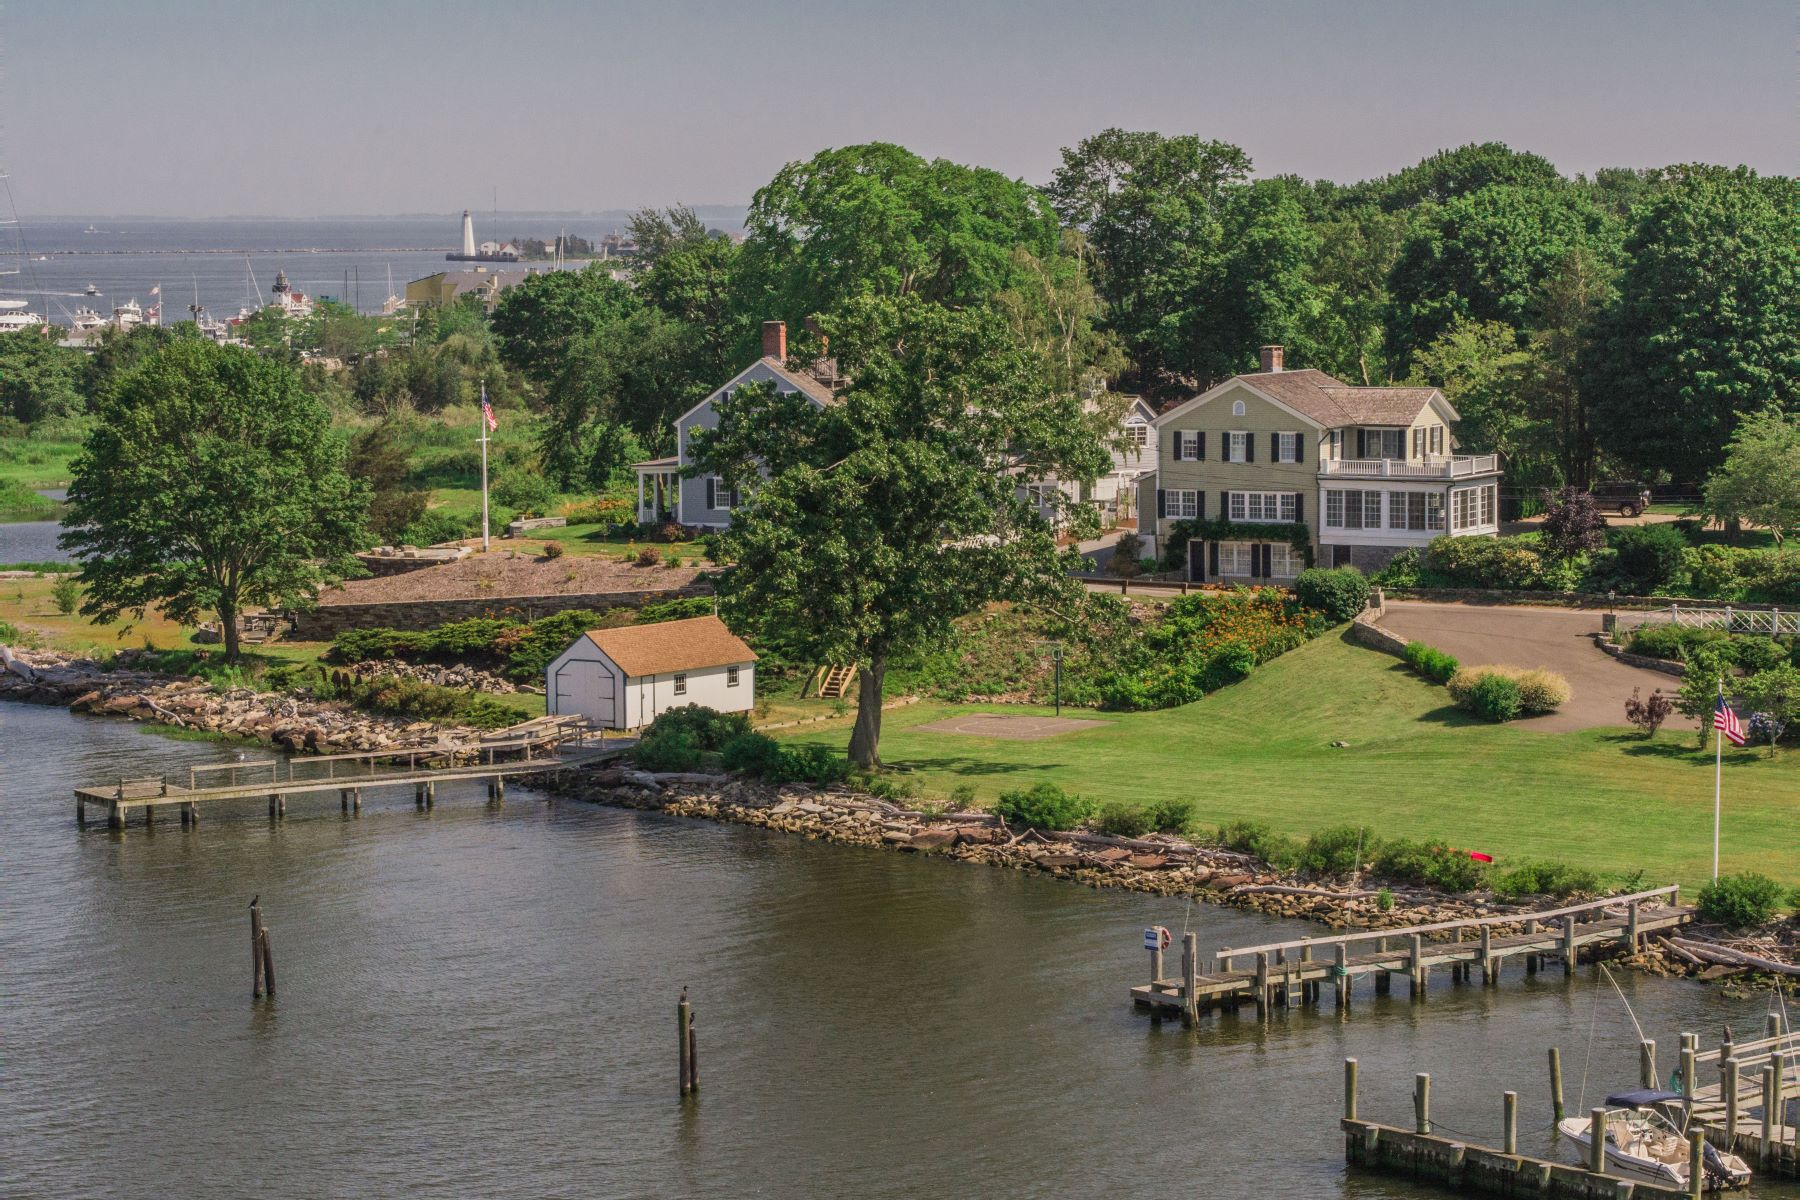 for Sale at Ca.1850 Colonial Meticulously Restored Has Water Views 184 North Cove Road Old Saybrook, Connecticut 06475 United States